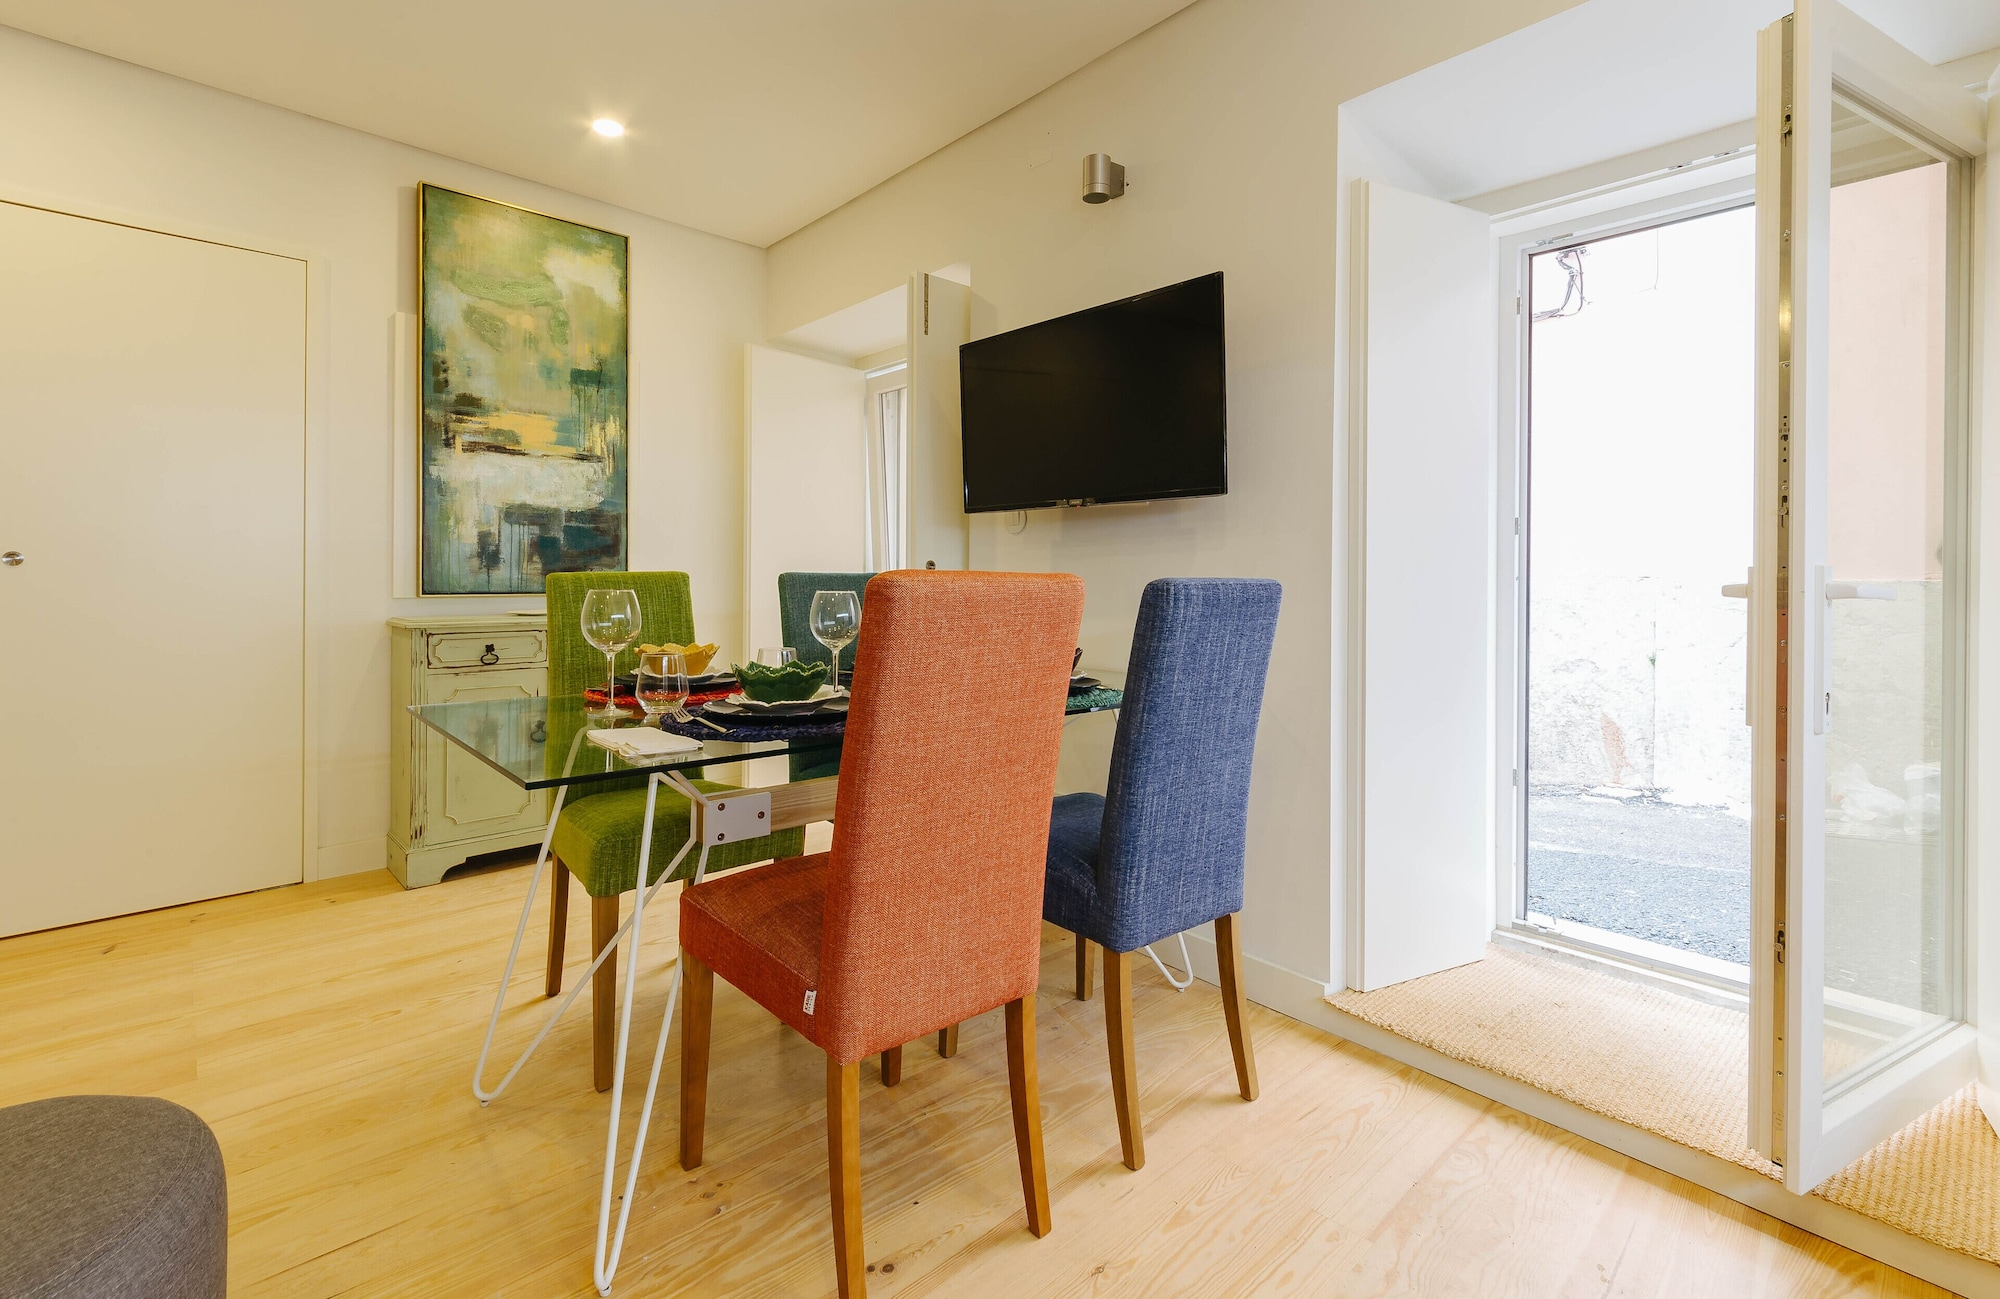 Santana Stylish Apartment Rentexperience, Lisboa